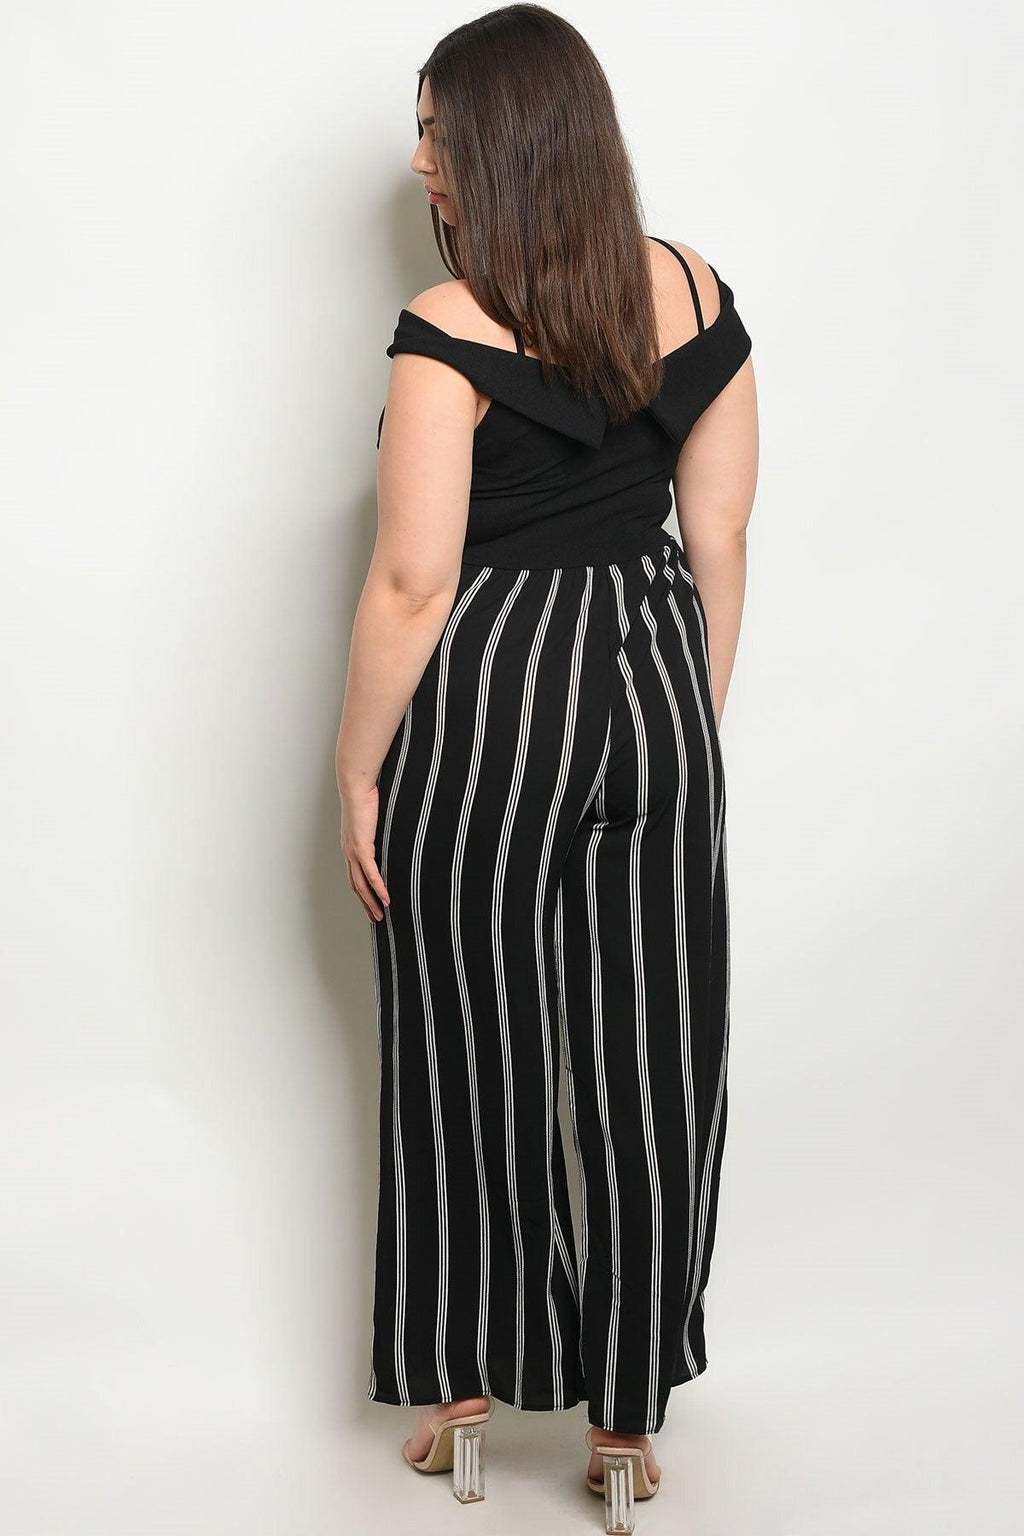 Royal Curves Pinstriped Jumpsuit - My Royal Closet